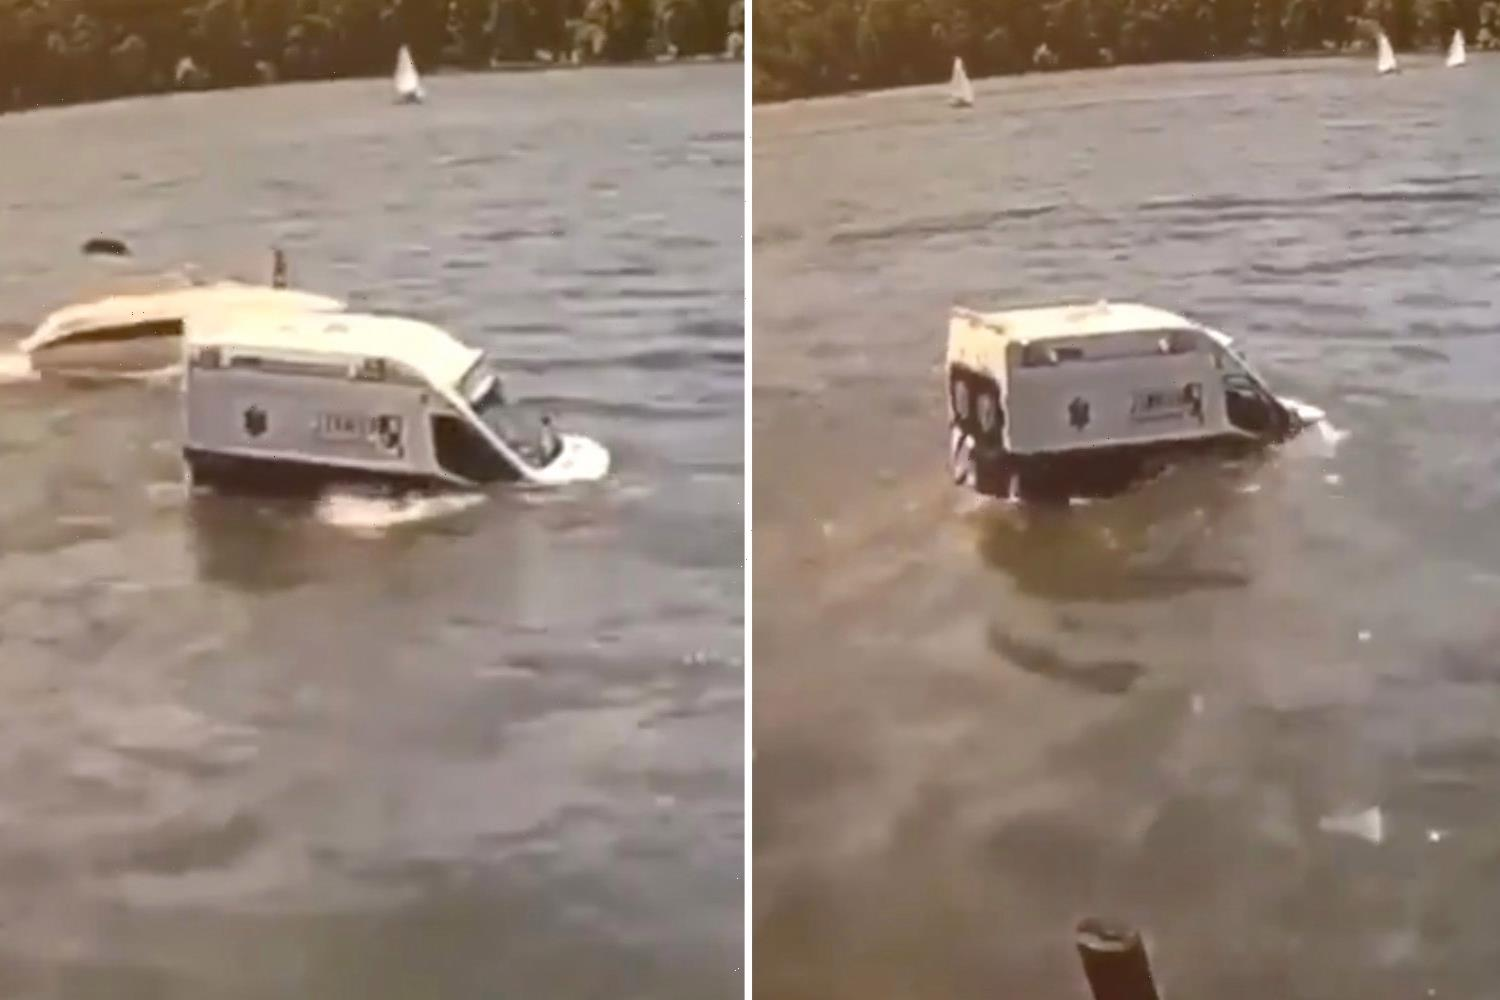 Shocking moment suspect drives stolen ambulance into Irondequoit Bay during dramatic police chase in upstate New York